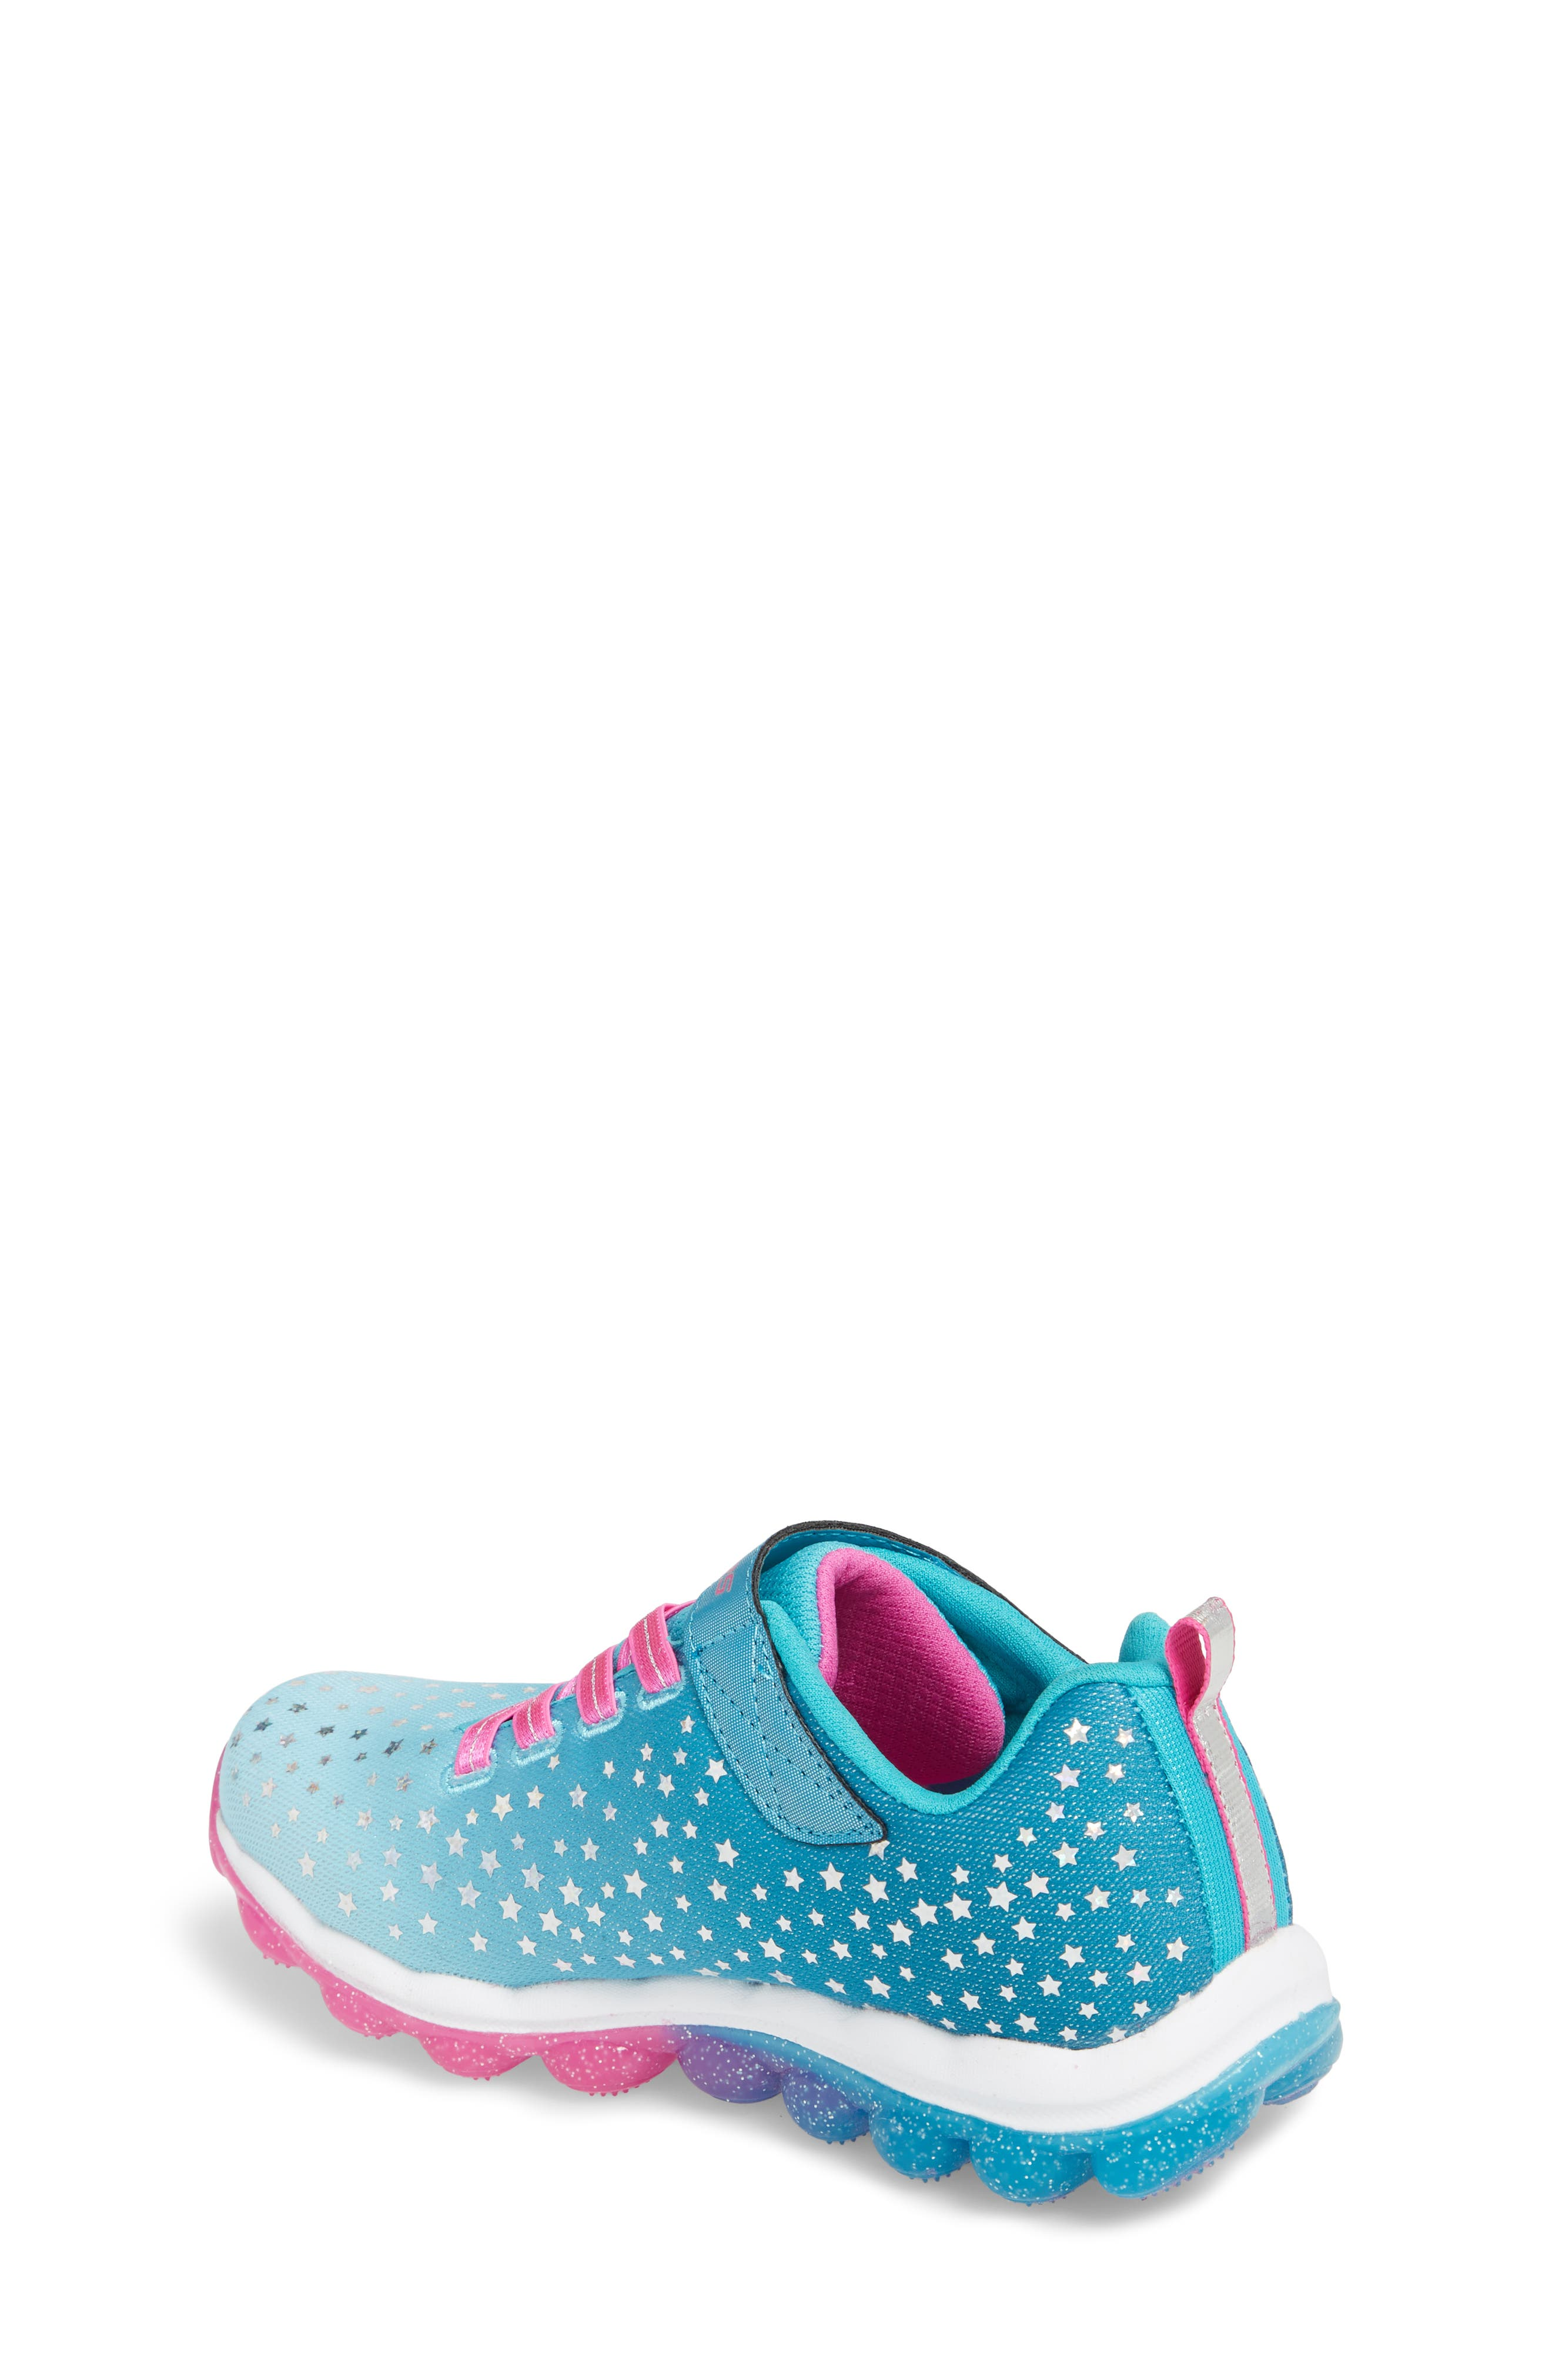 Skech-Air Ultra Glam It Up Sneaker,                             Alternate thumbnail 2, color,                             425